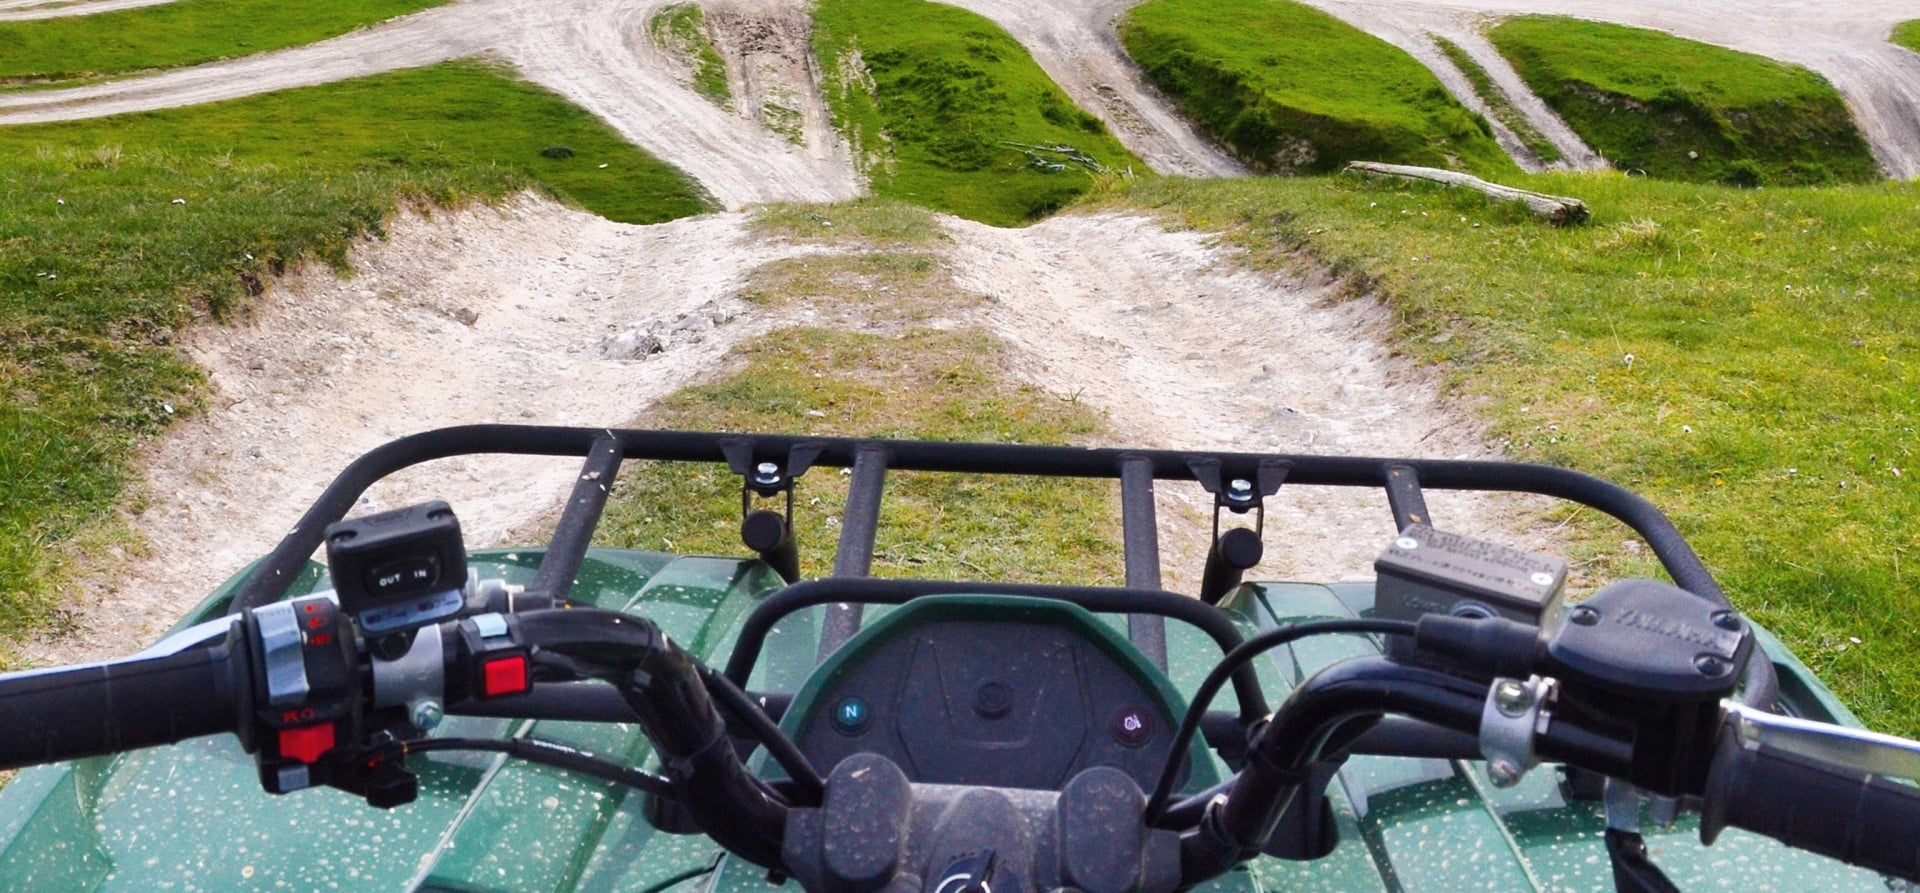 Quad Bike Introduction Thrill - Kent-5